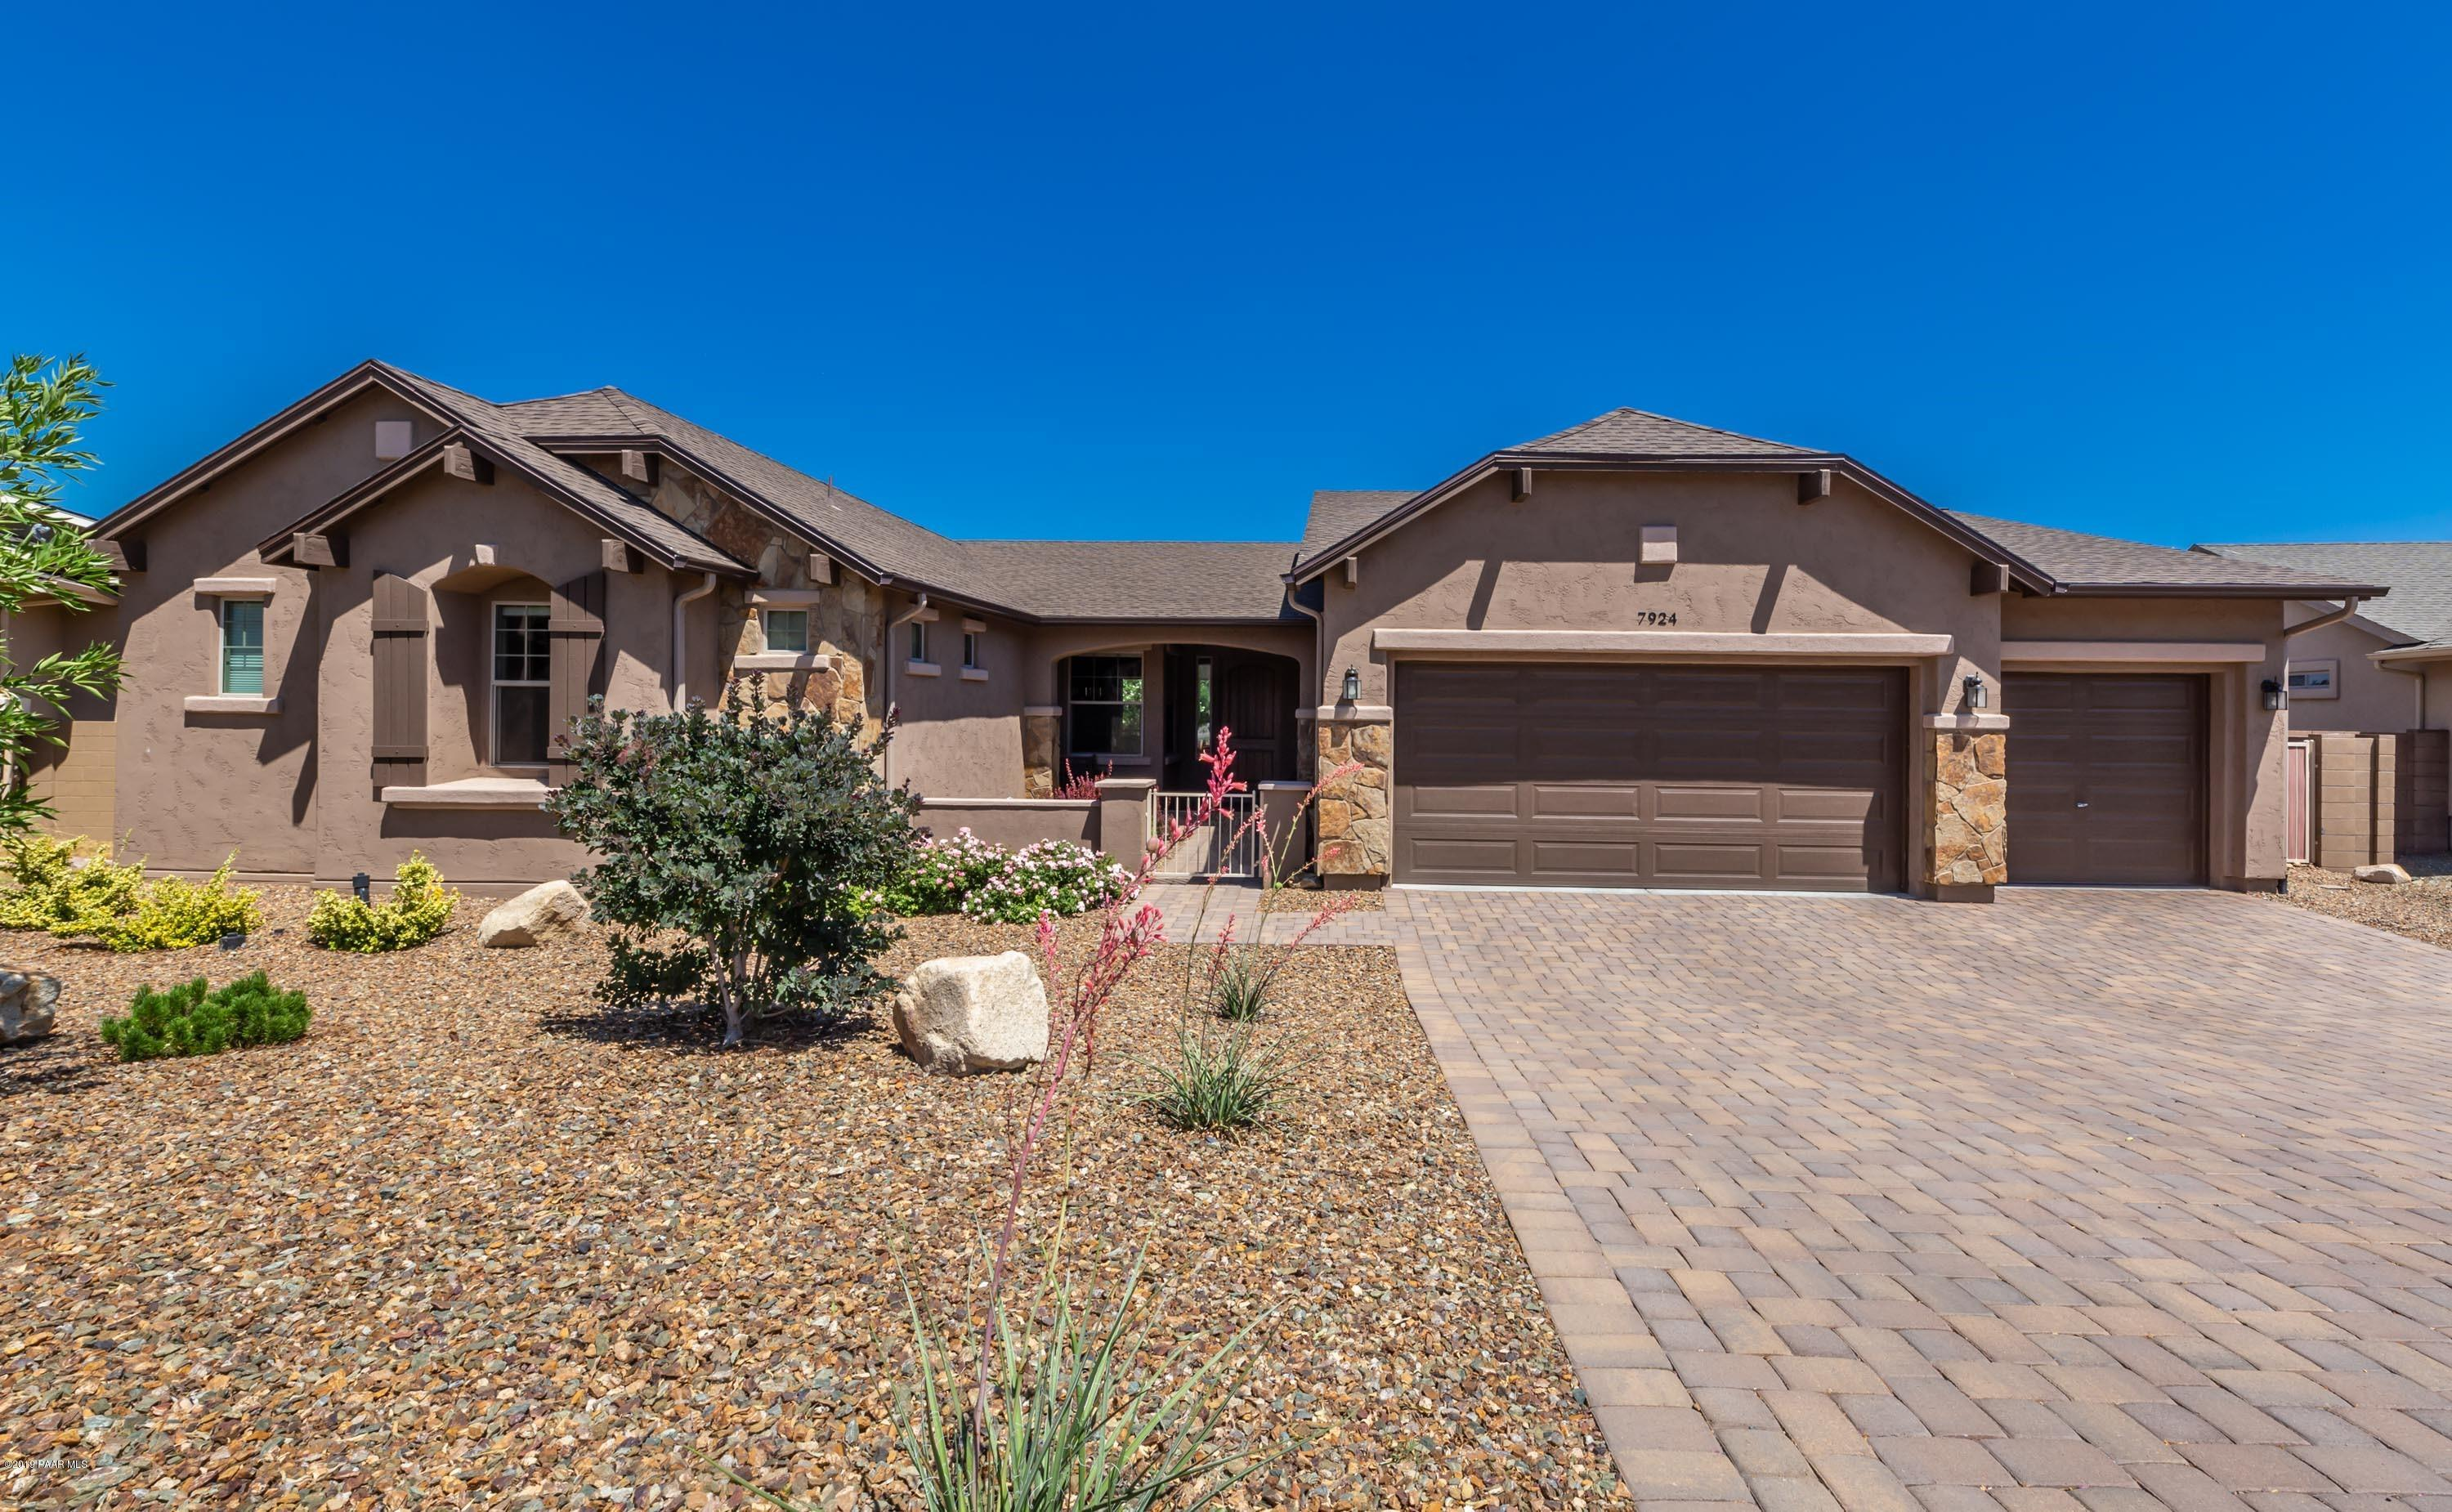 7924 E Sleepy Owl Way, Prescott Valley, Arizona